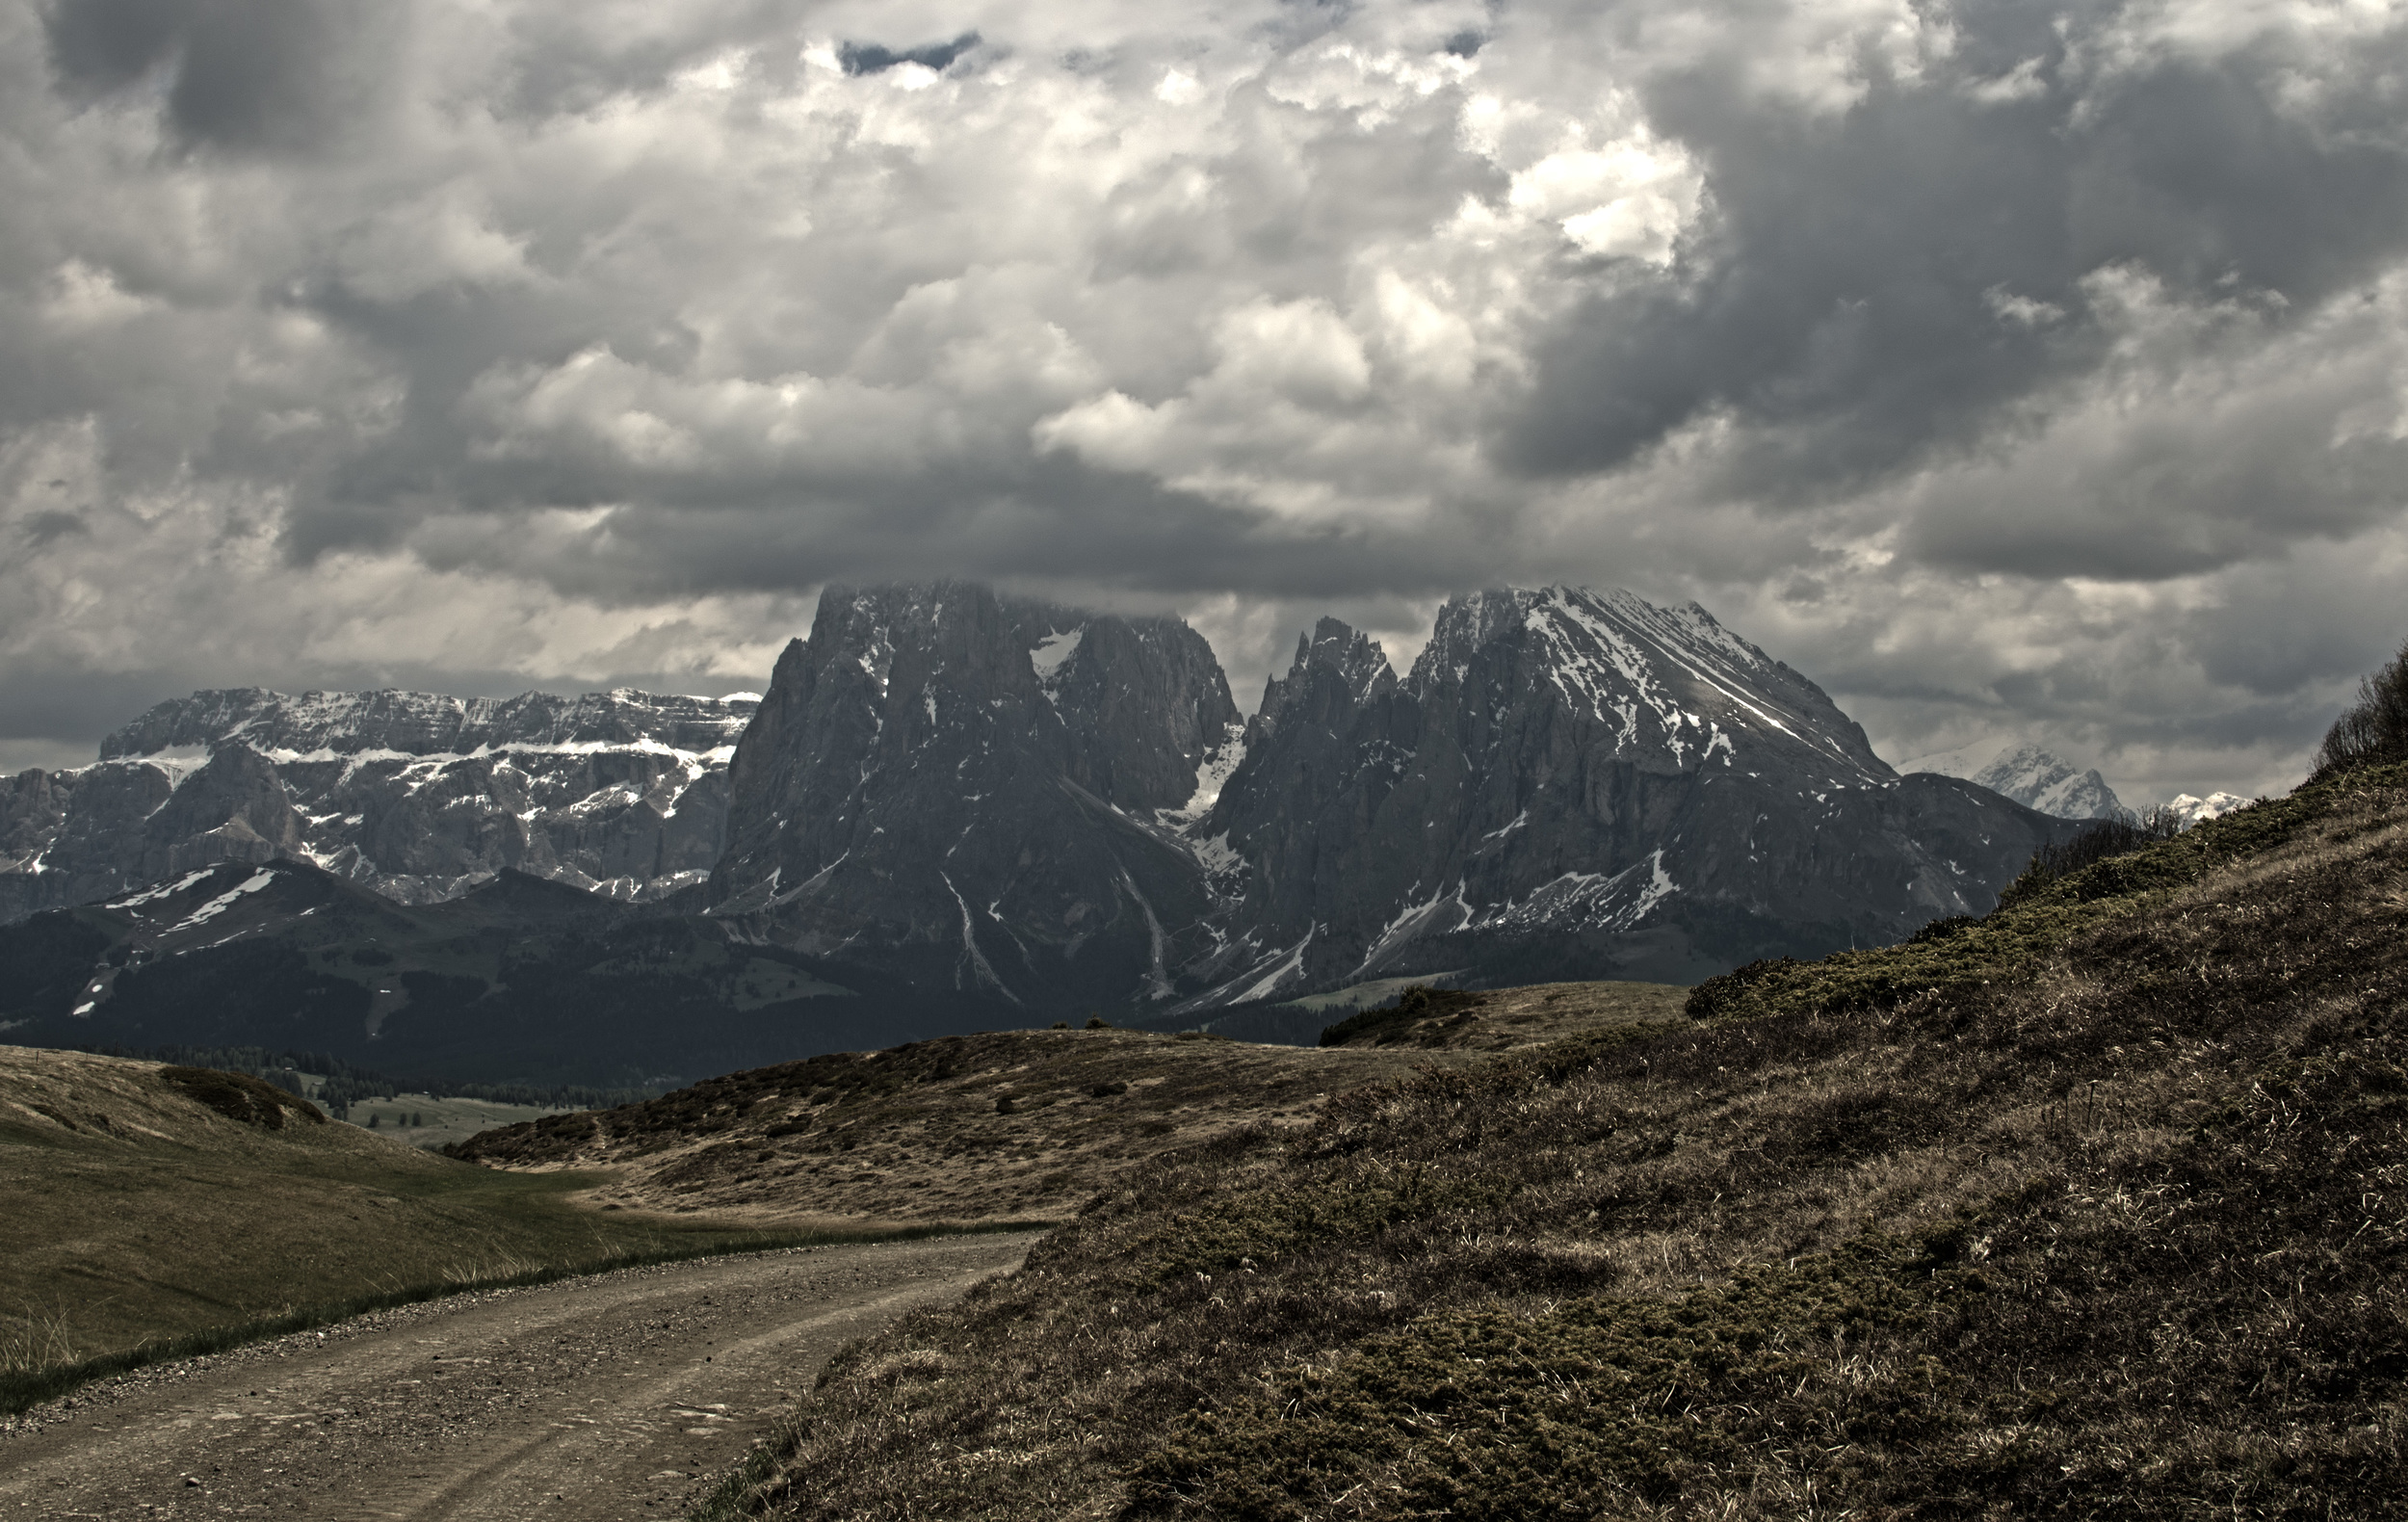 Clouds_Mountains)desaturated_HDR2.jpg